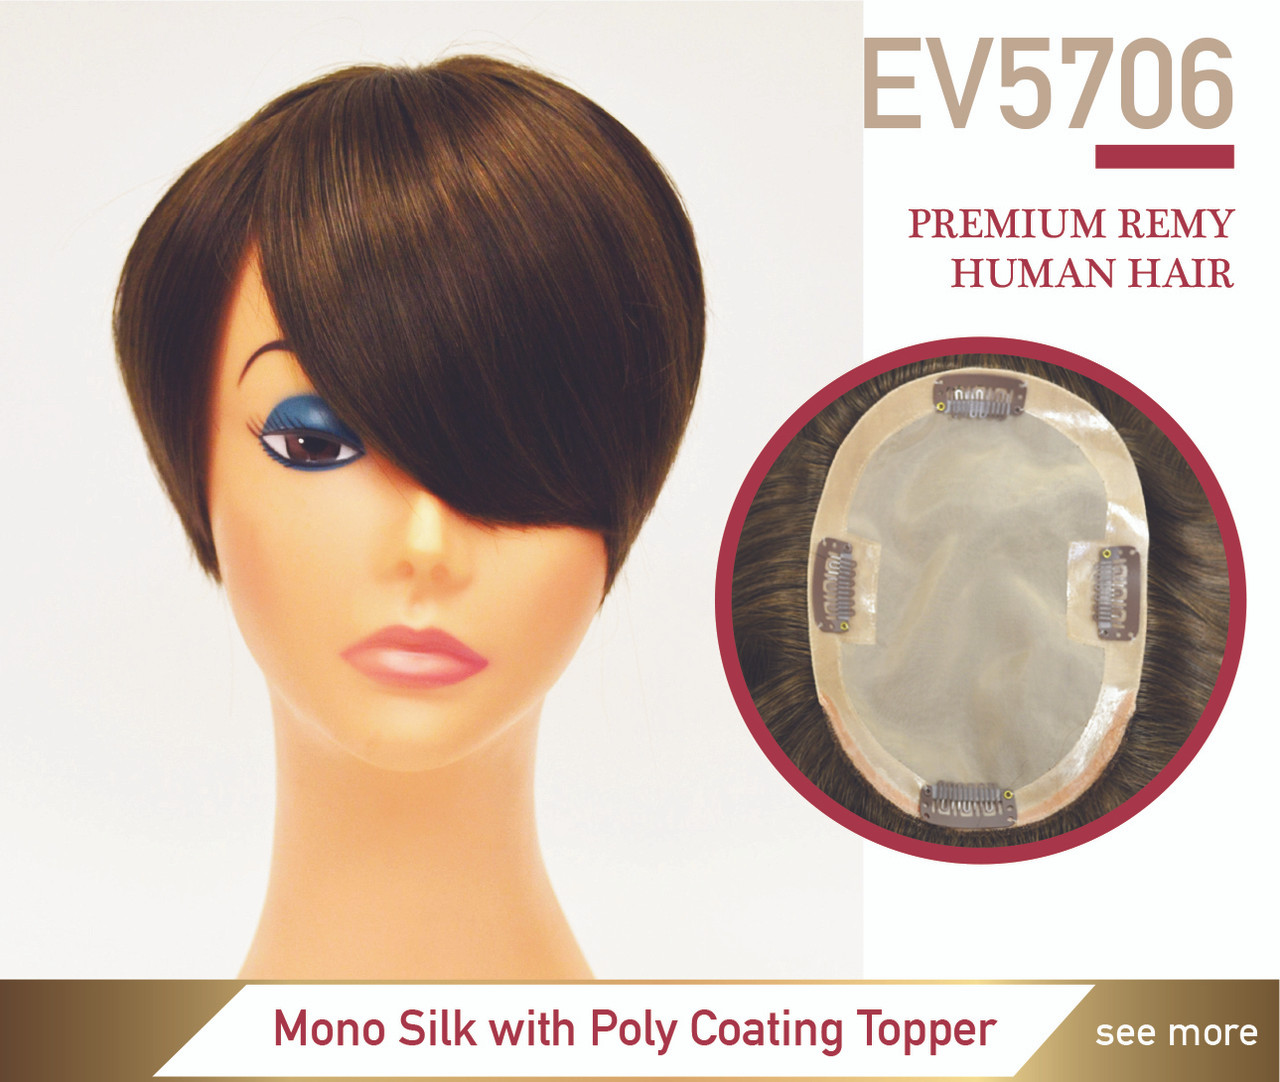 Hair Toppers Clip On Hairpieces Premium Hair Ev5706